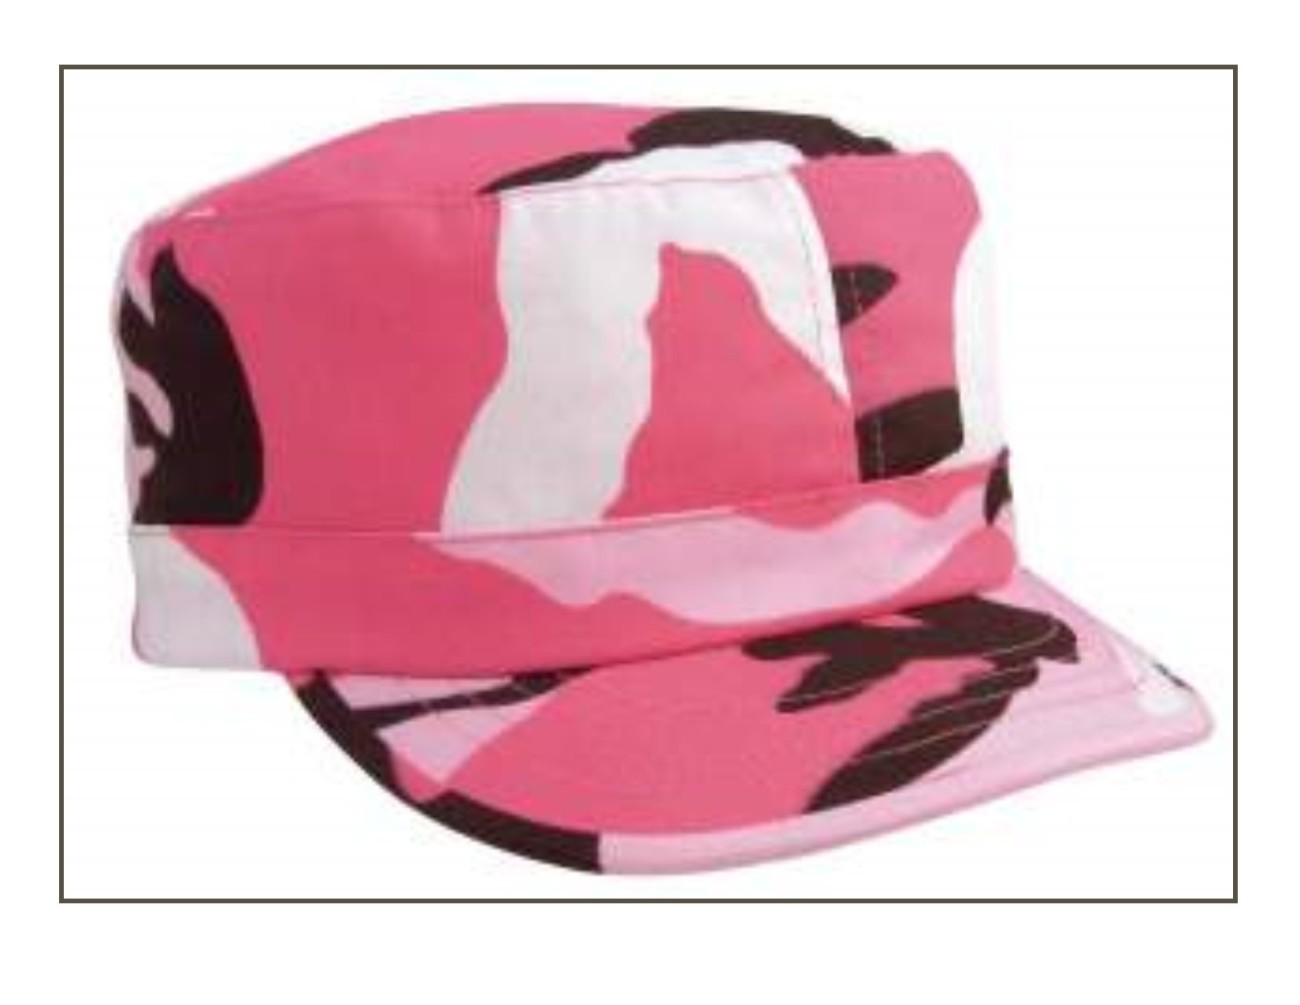 Women's Adjustable Vintage Fatigue Cap - Pink Camo